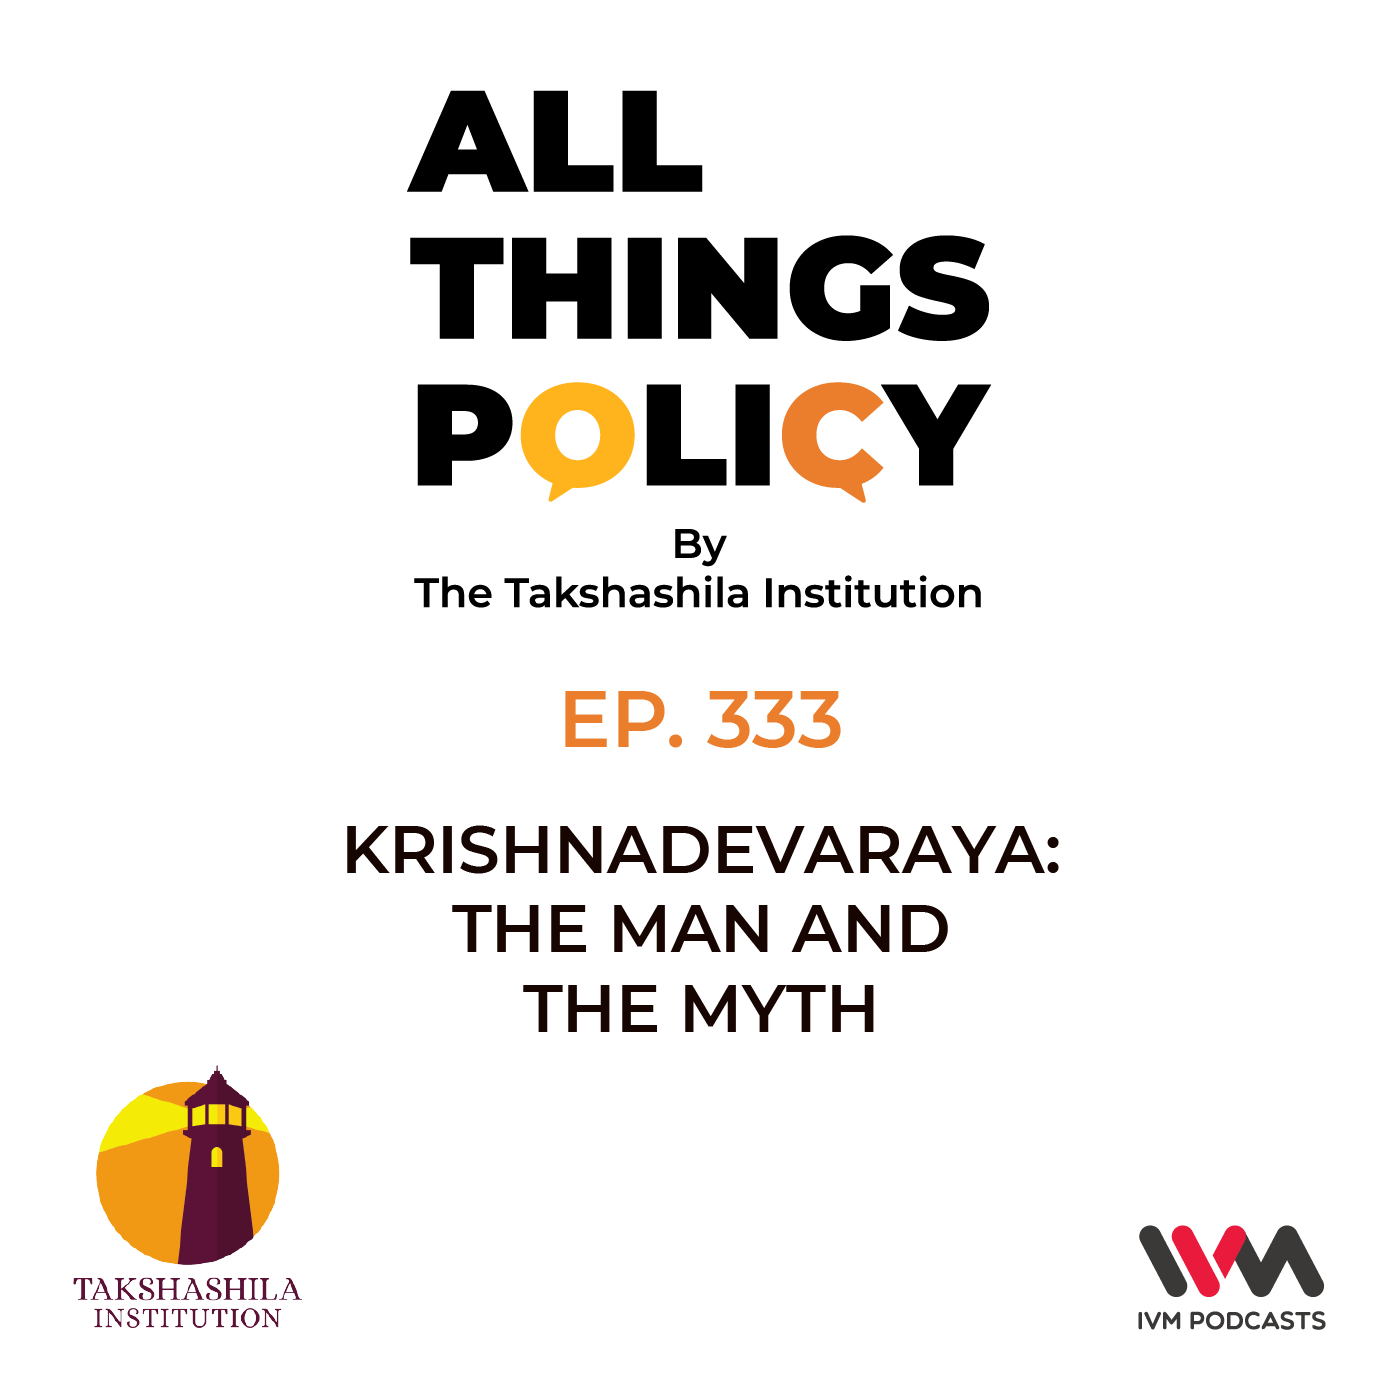 Ep. 333: Krishnadevaraya: The Man and the Myth